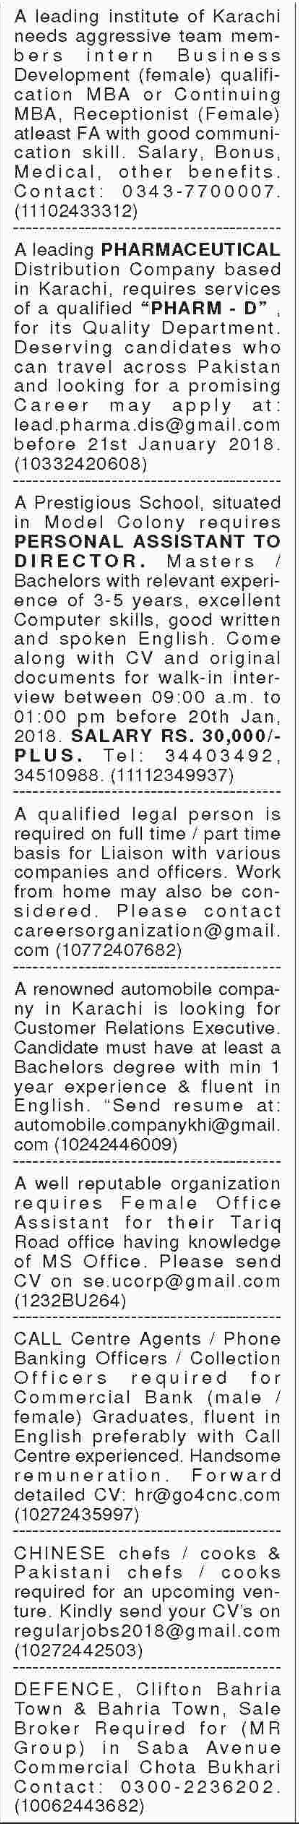 General Staff Required For Karachi